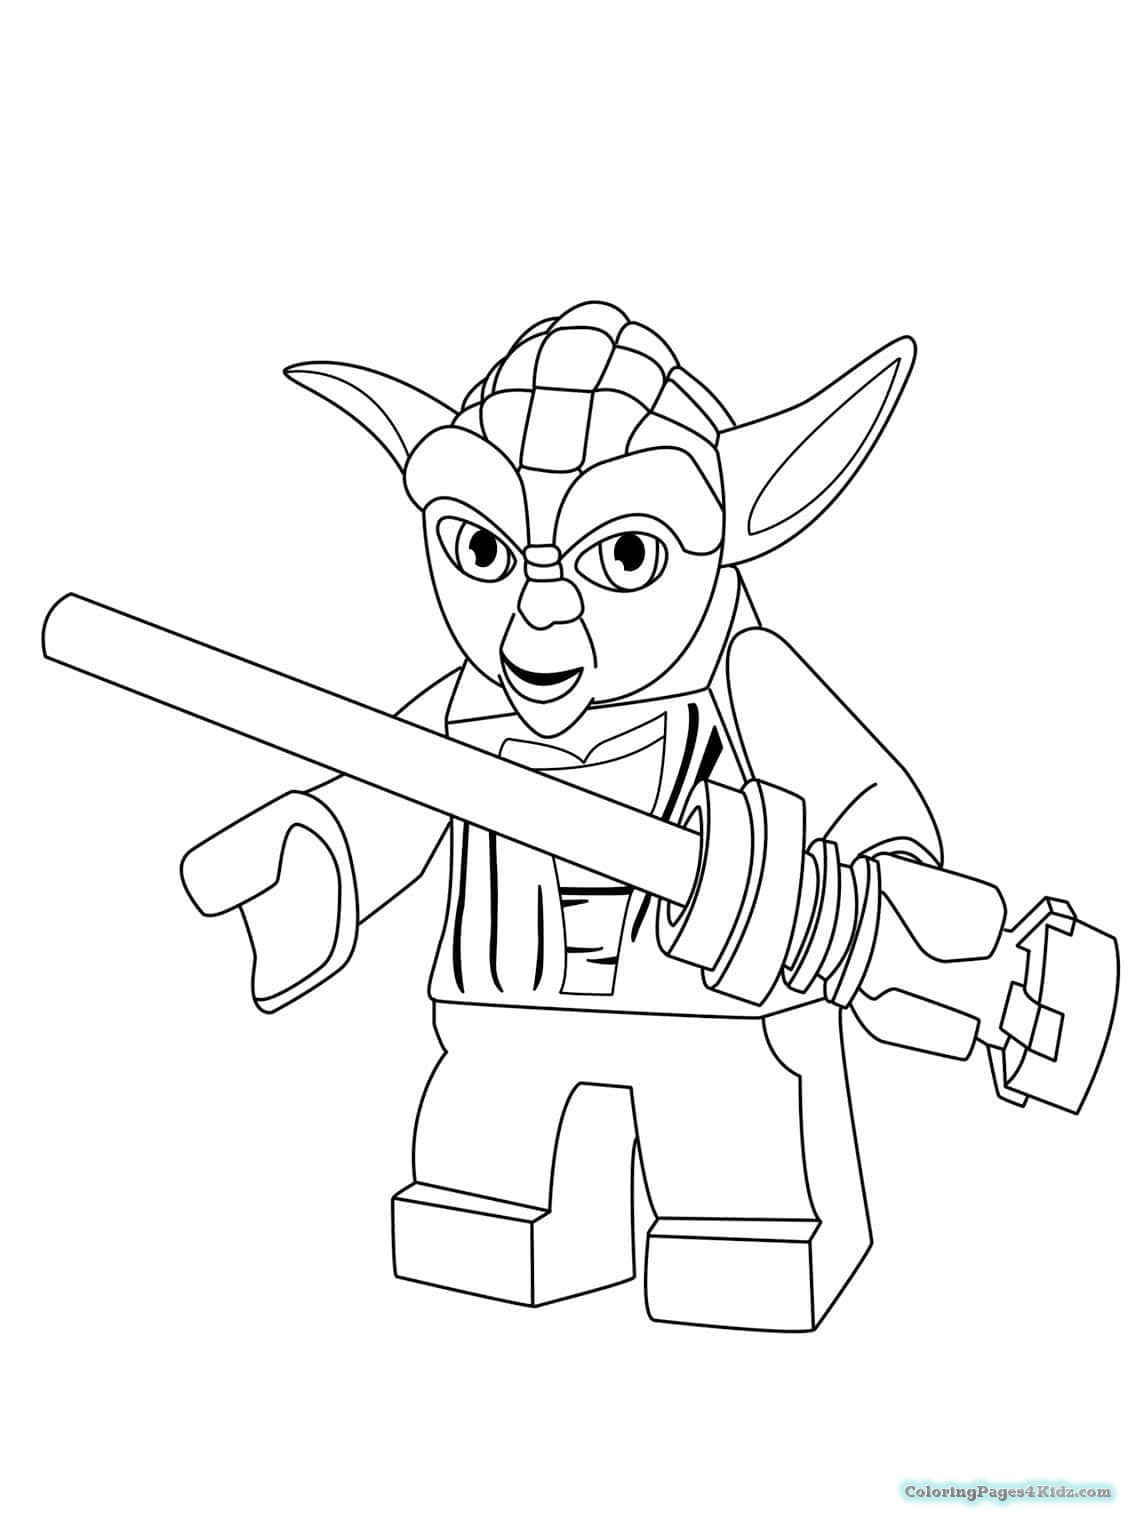 printable lego star wars coloring pages star wars the force awakens lego coloring pages coloring printable coloring lego star wars pages